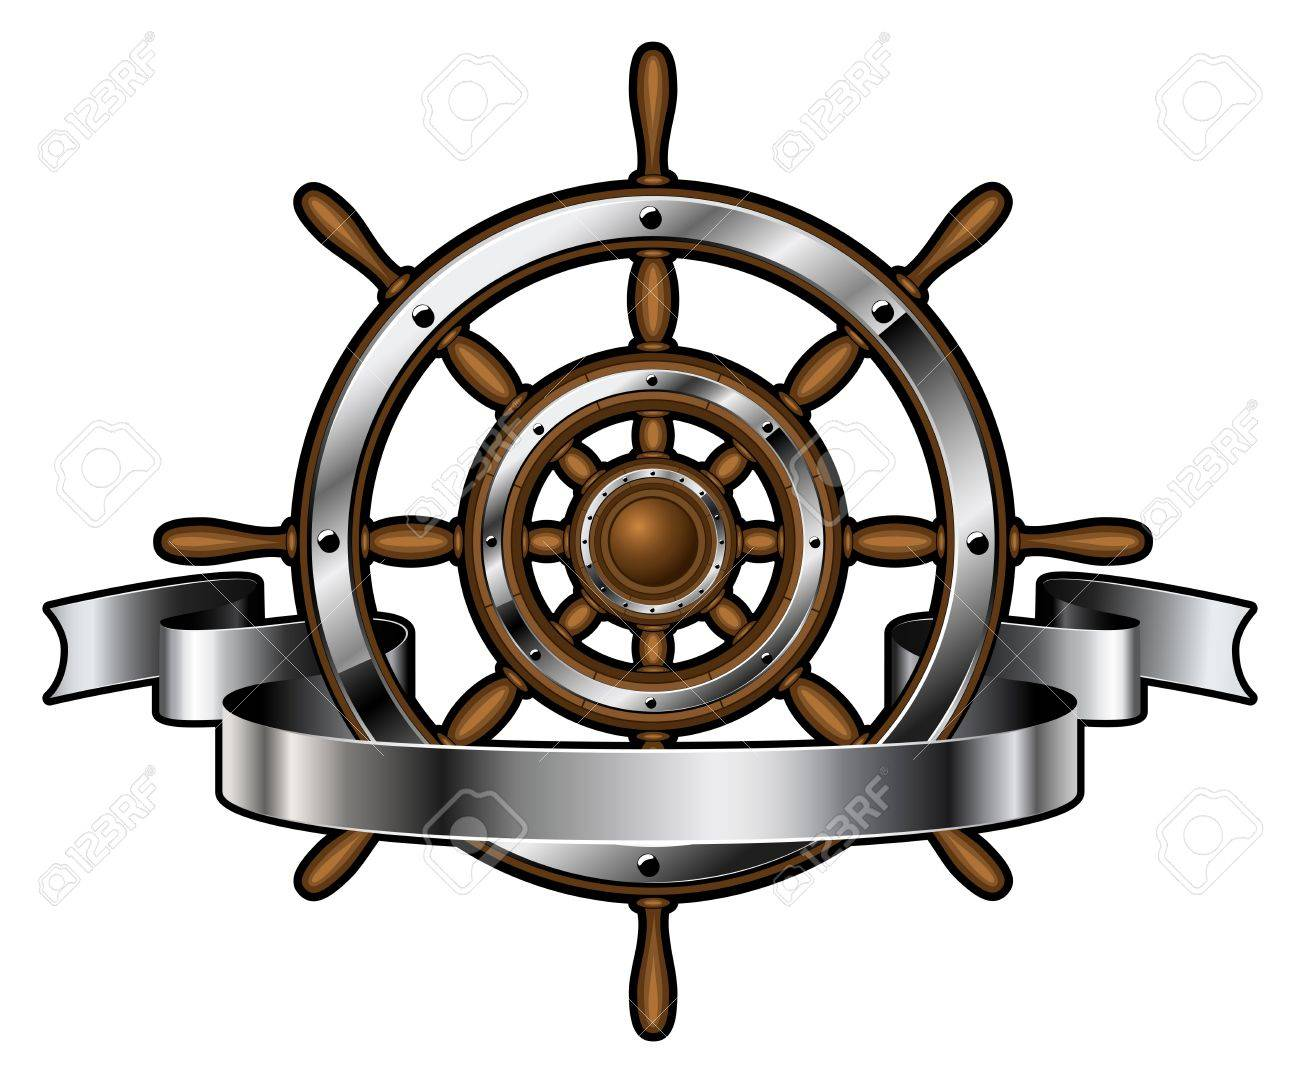 Ship wooden and steel steering wheel corporate emblem with banner isolated on white background. Navigation symbol. Vector illustration. - 52416655